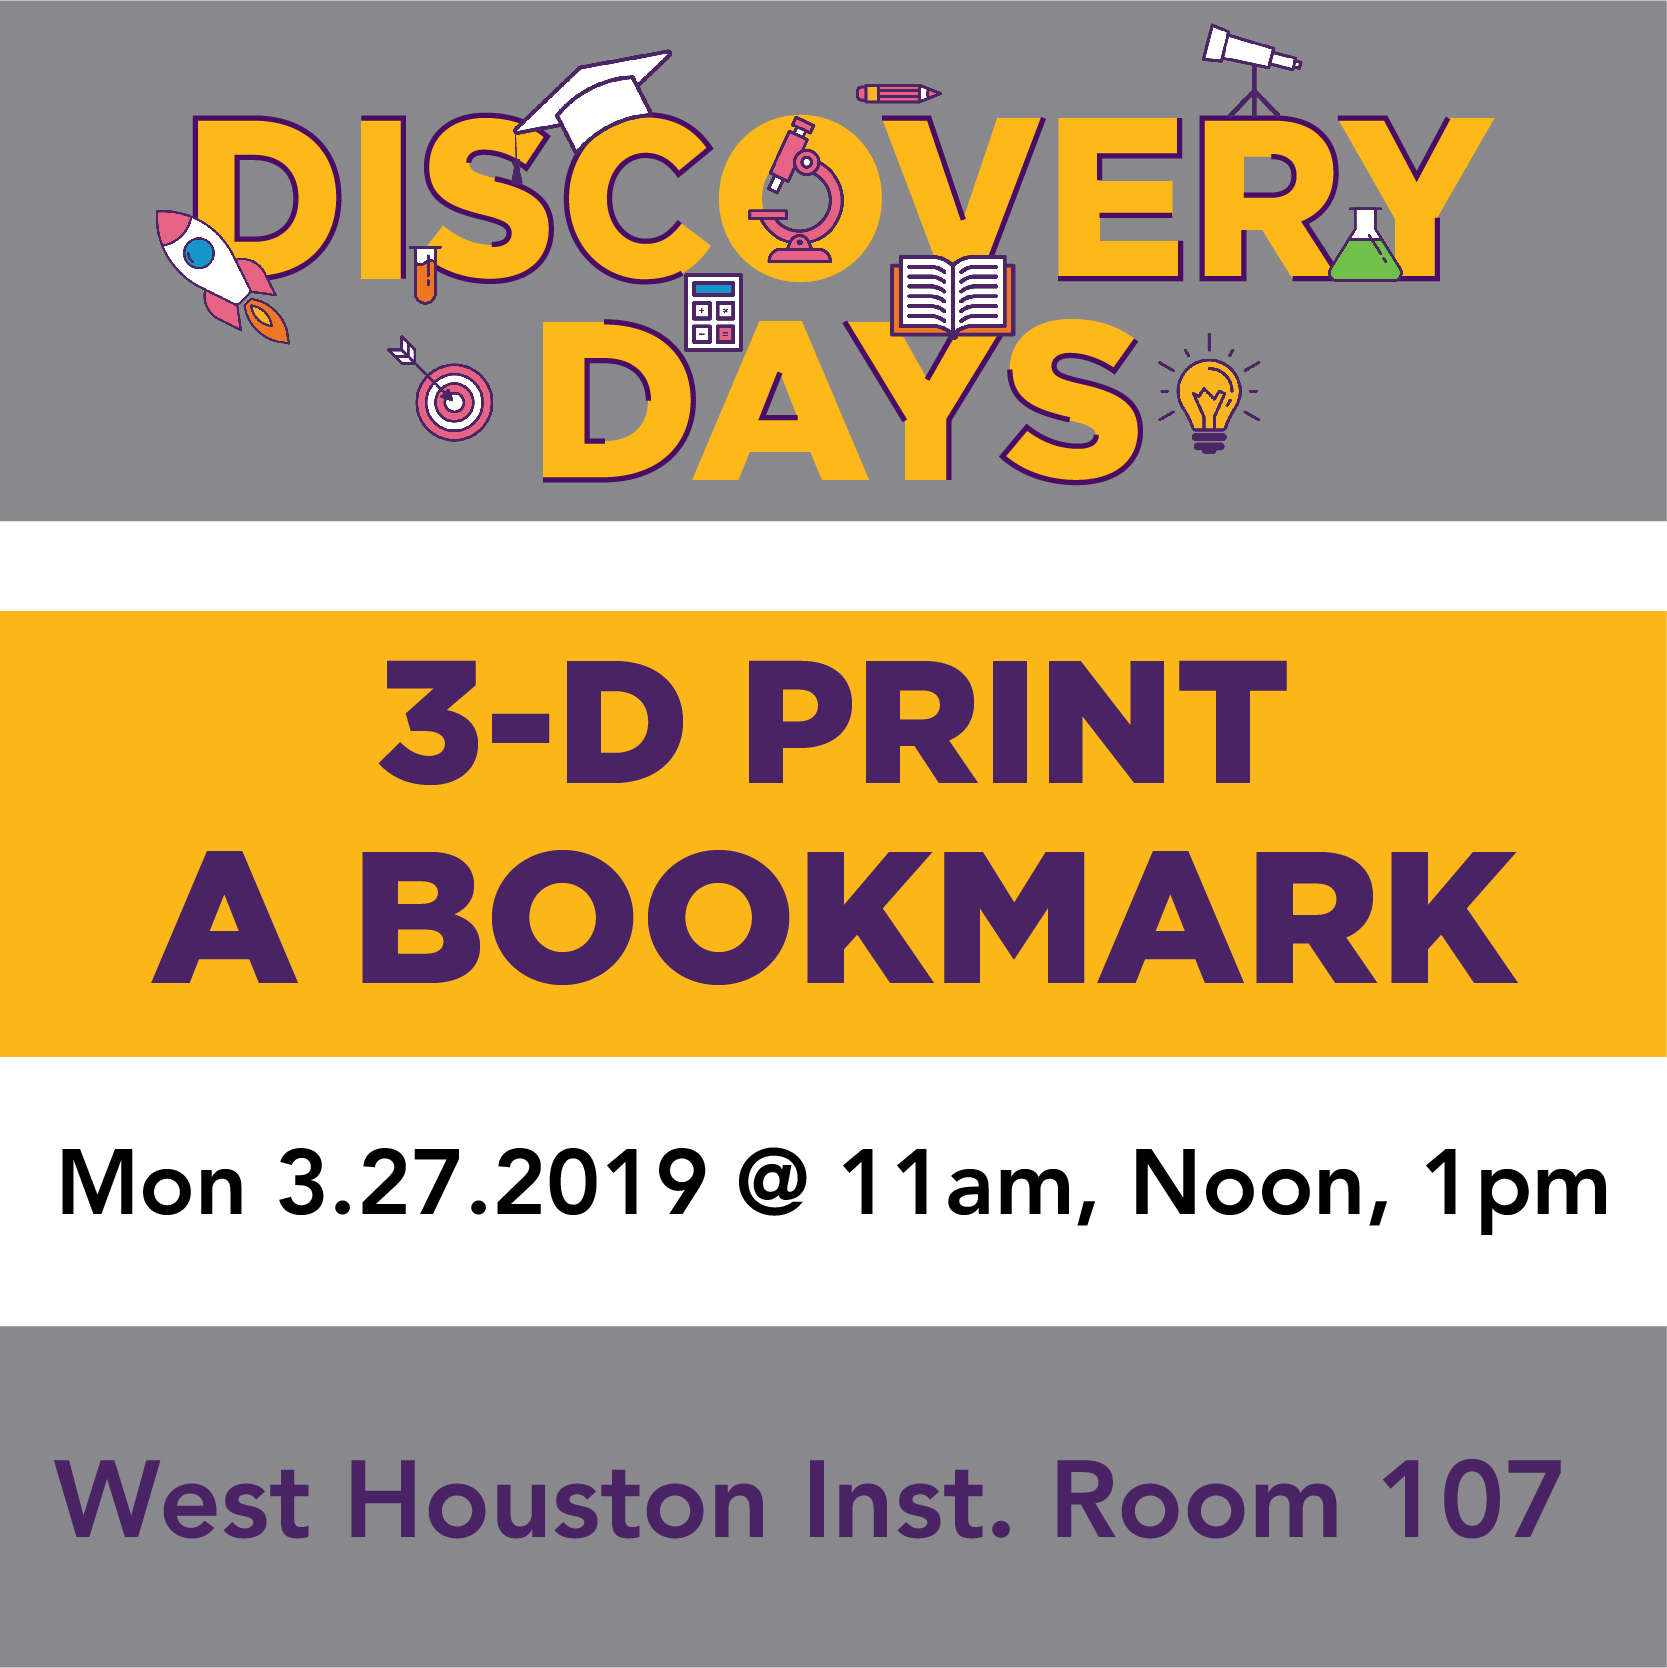 Discovery Days - 3D Print Your Own Bookmark